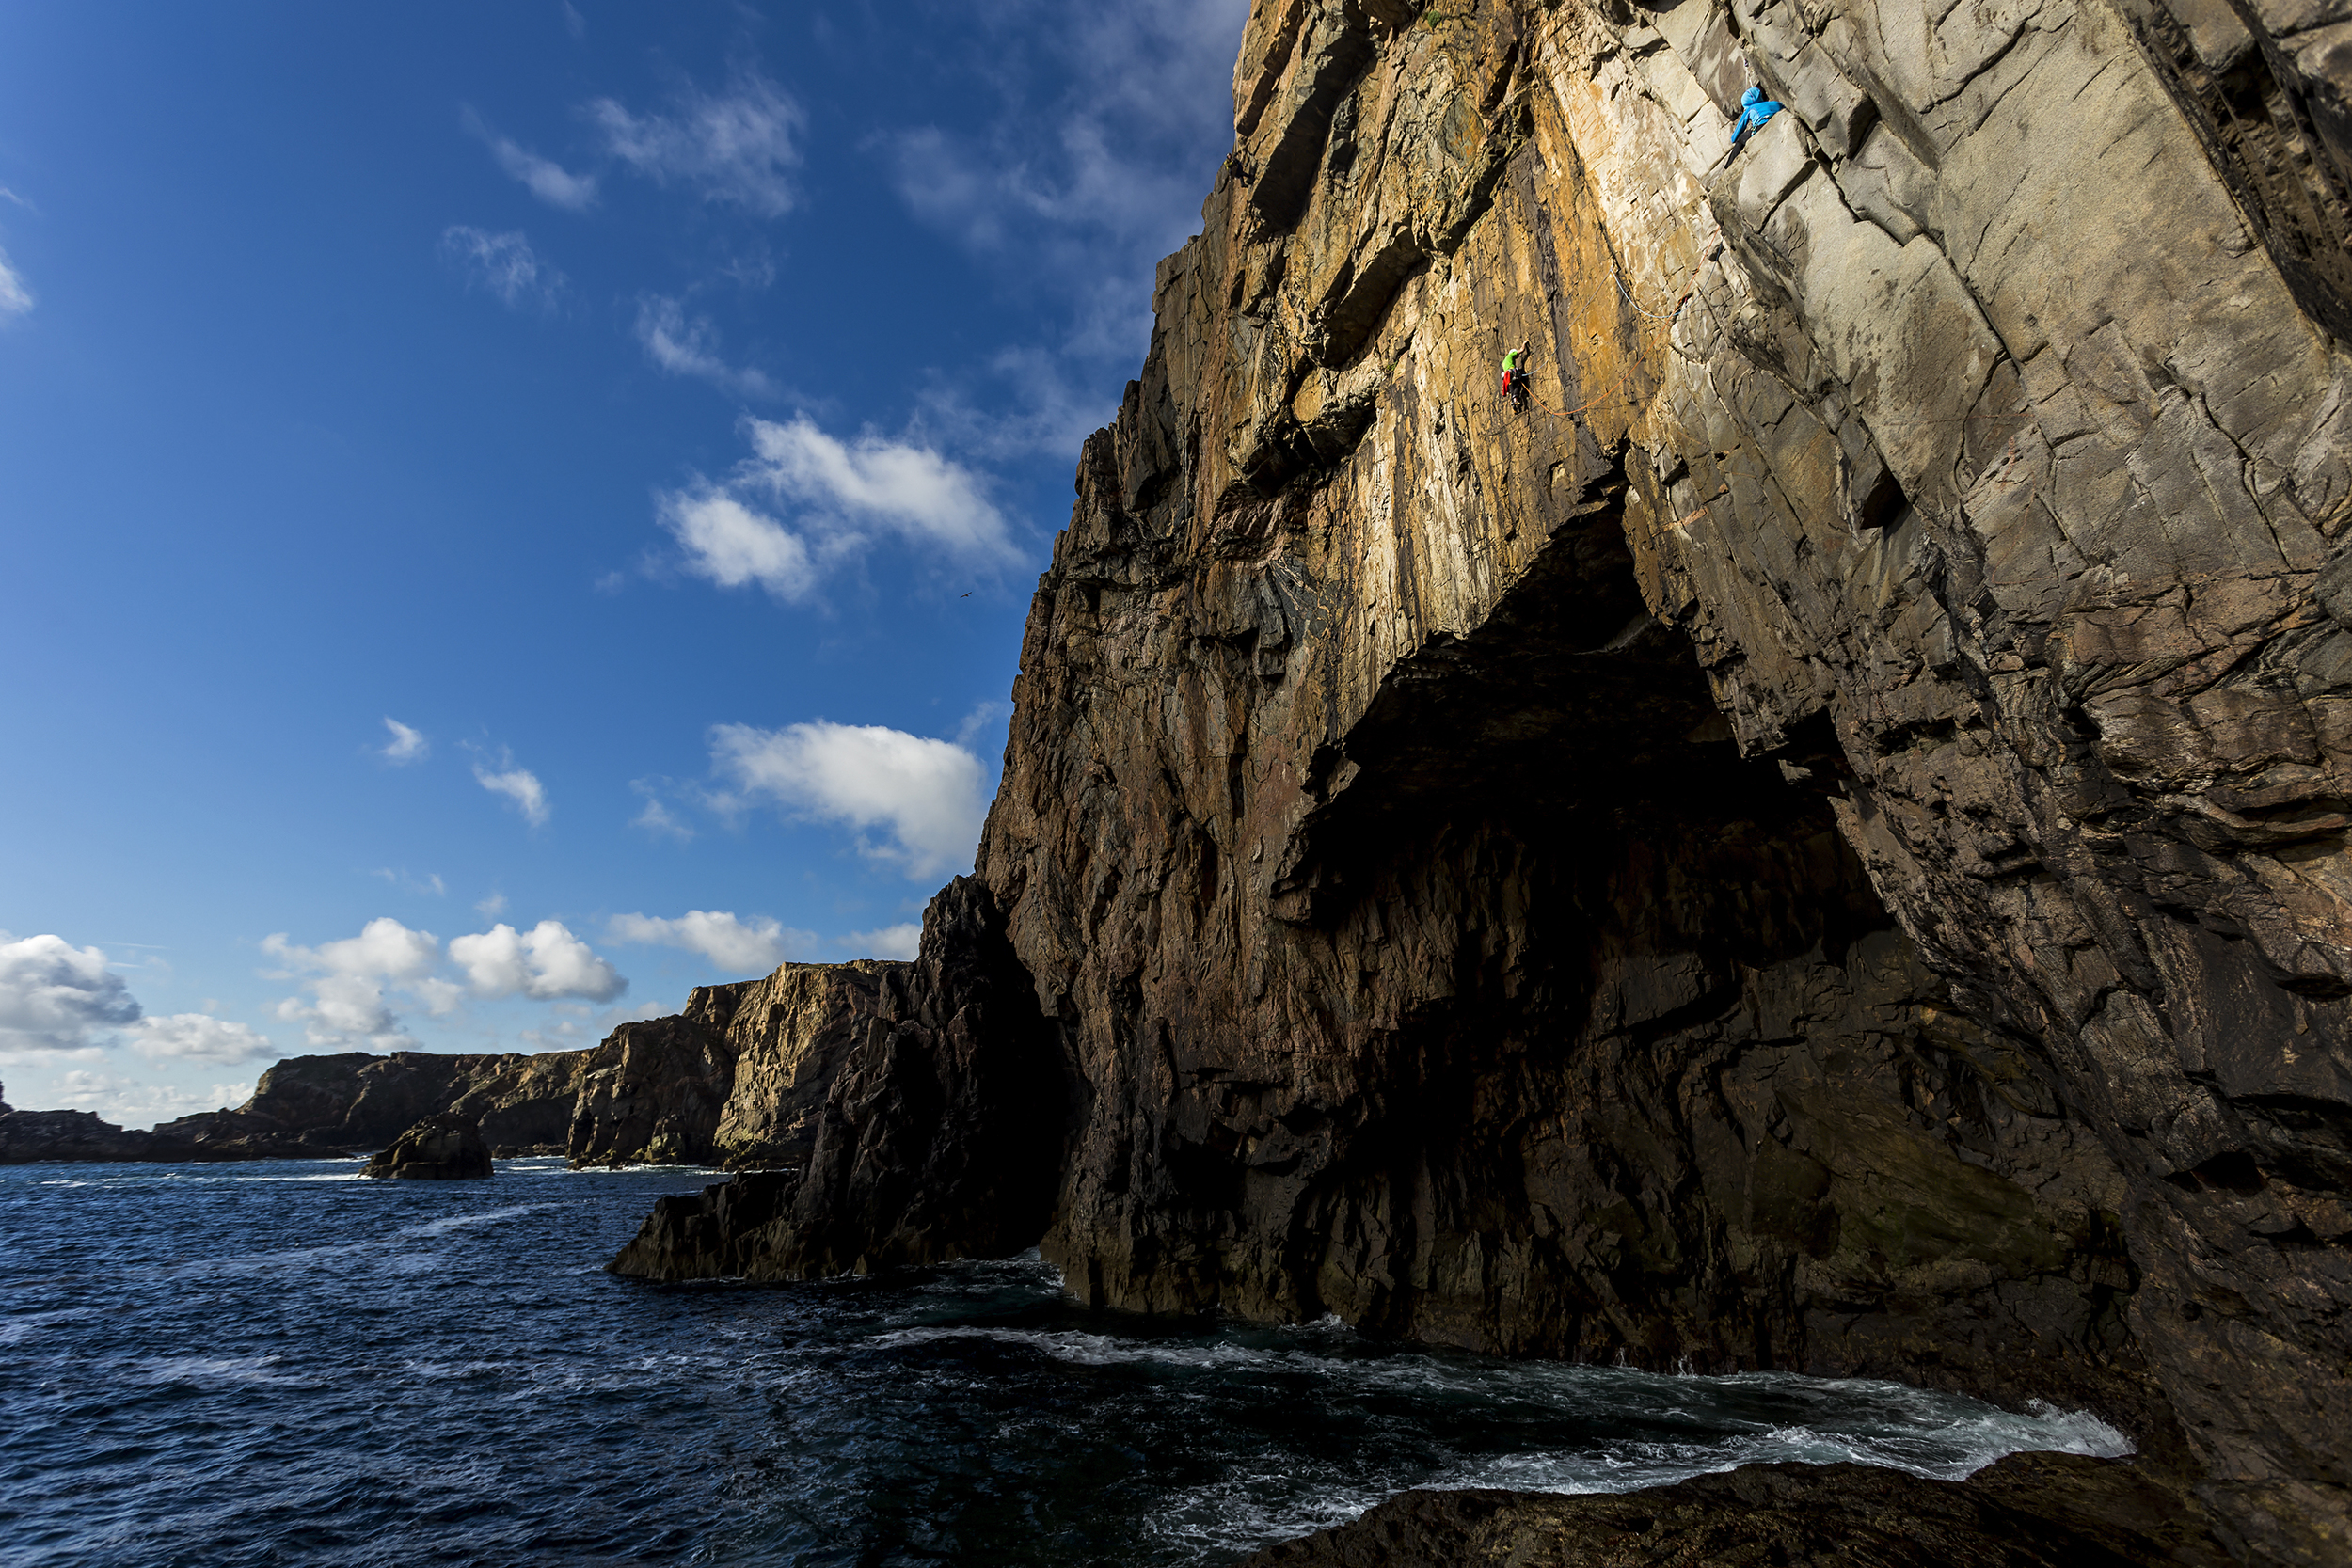 Dave MacLeod on The Prozac Link (E4) at Screaming Geo, Isle of Lewis.